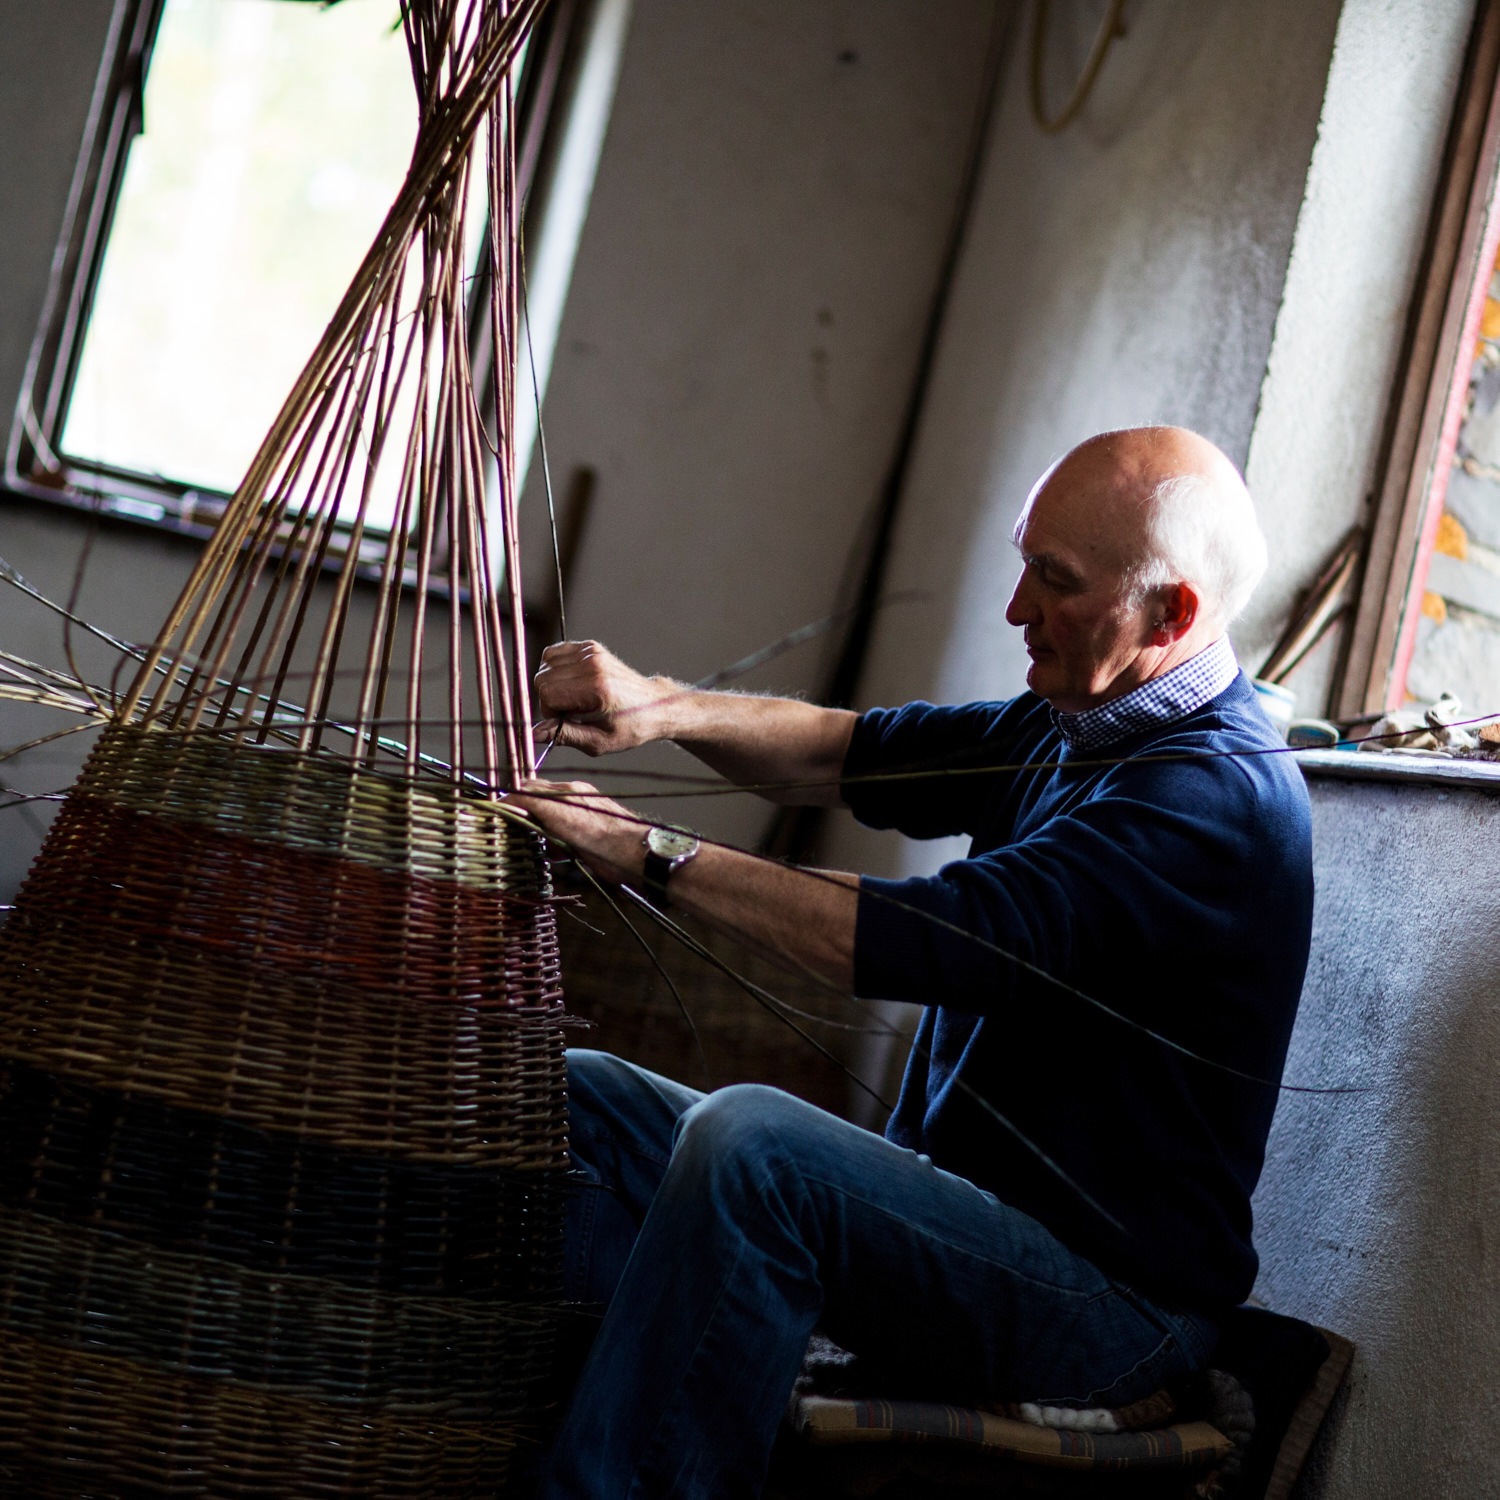 Design Island_daa_Basketry_Joe Hogan Baskets_Joe Hogan_making_1_PR.jpg